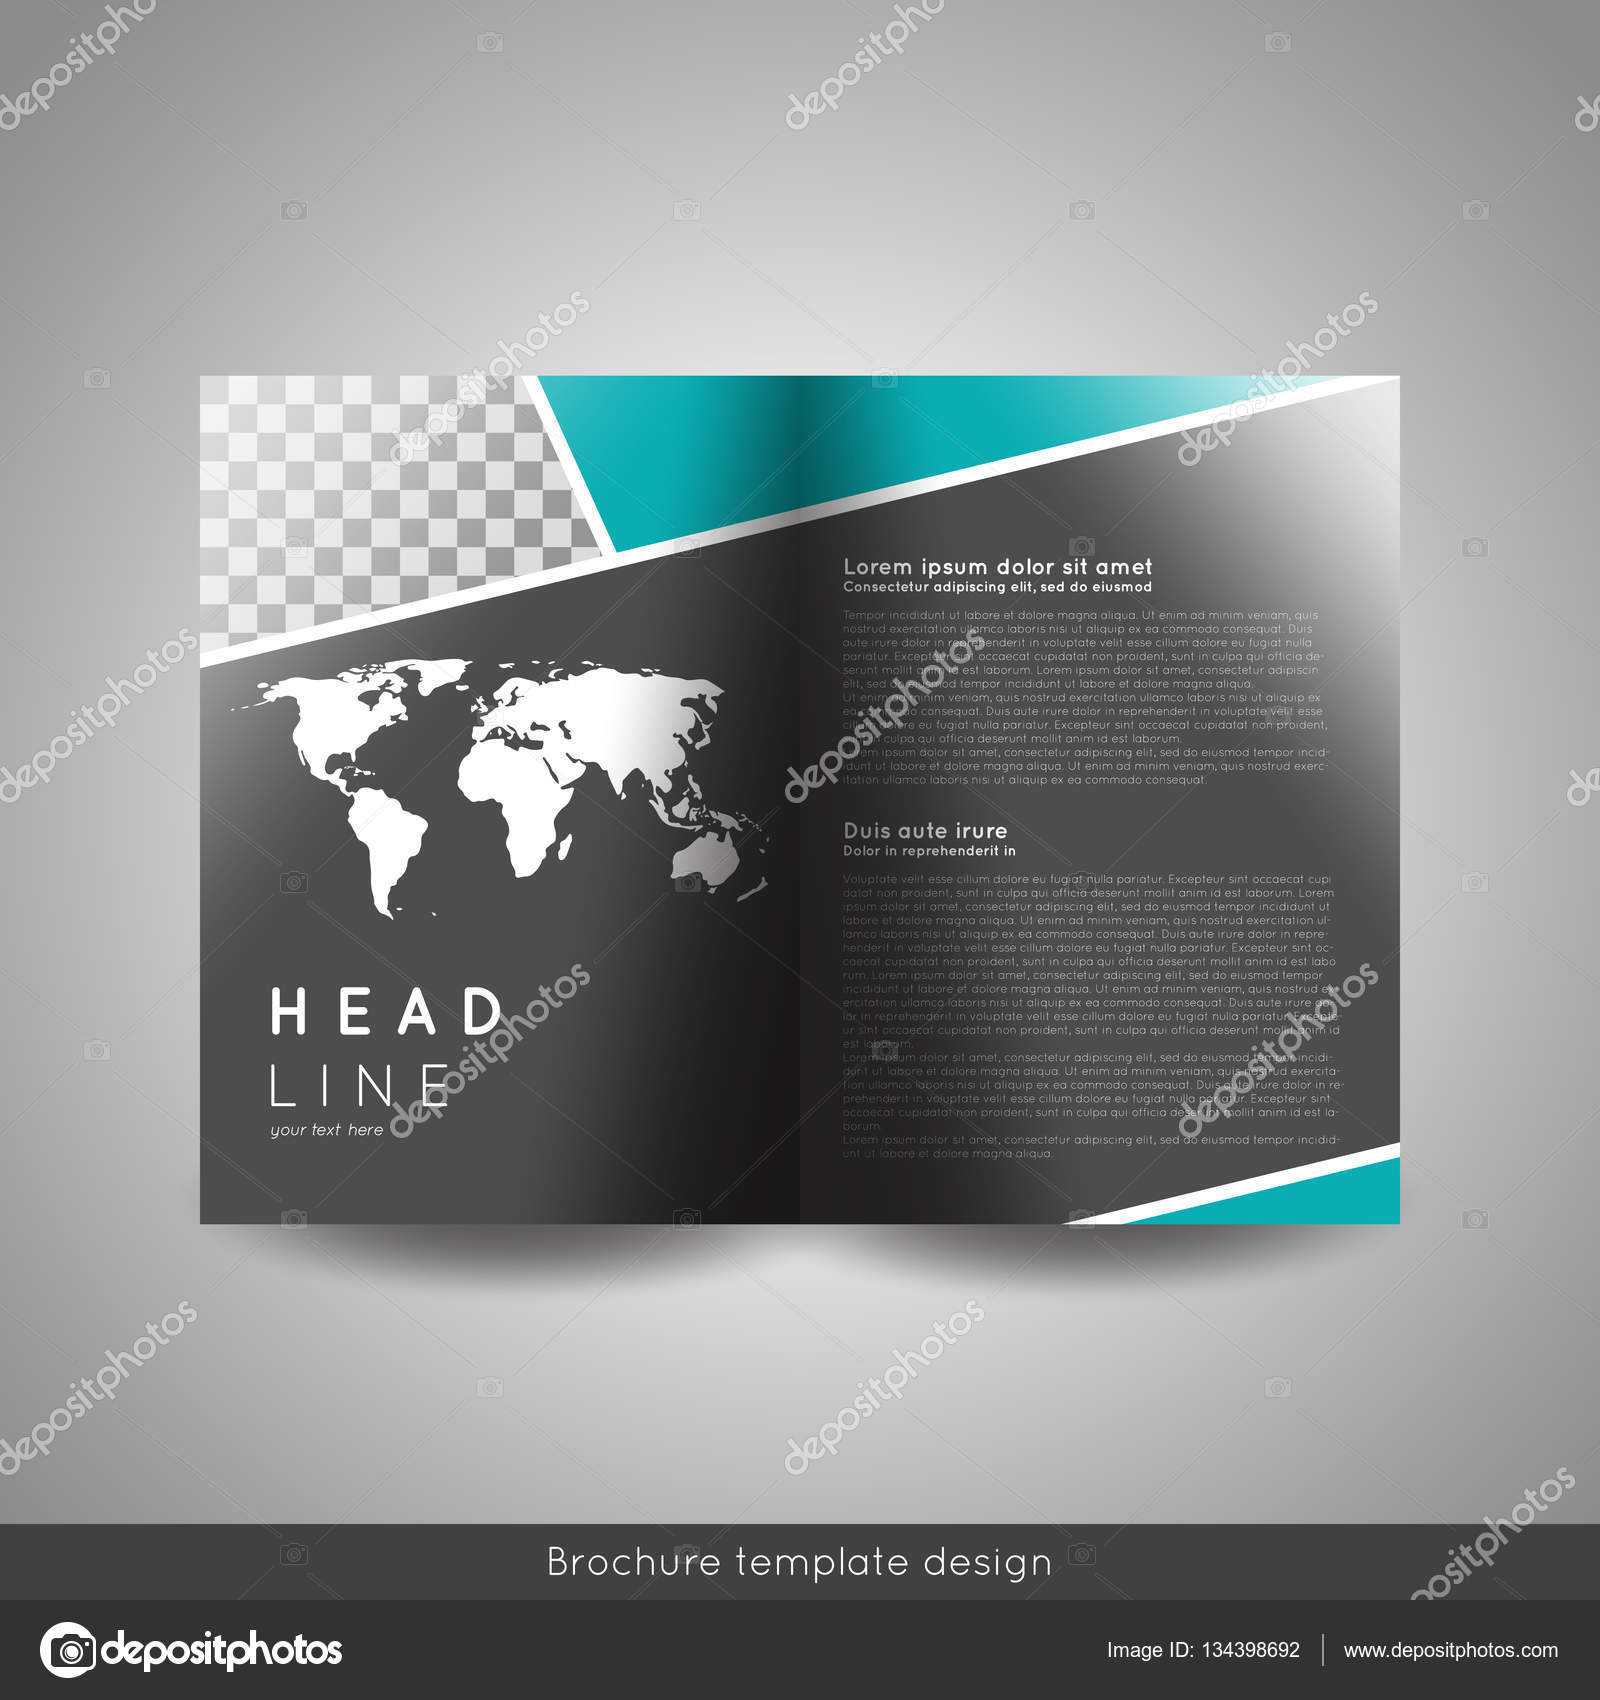 free templates for brochures and flyers.html